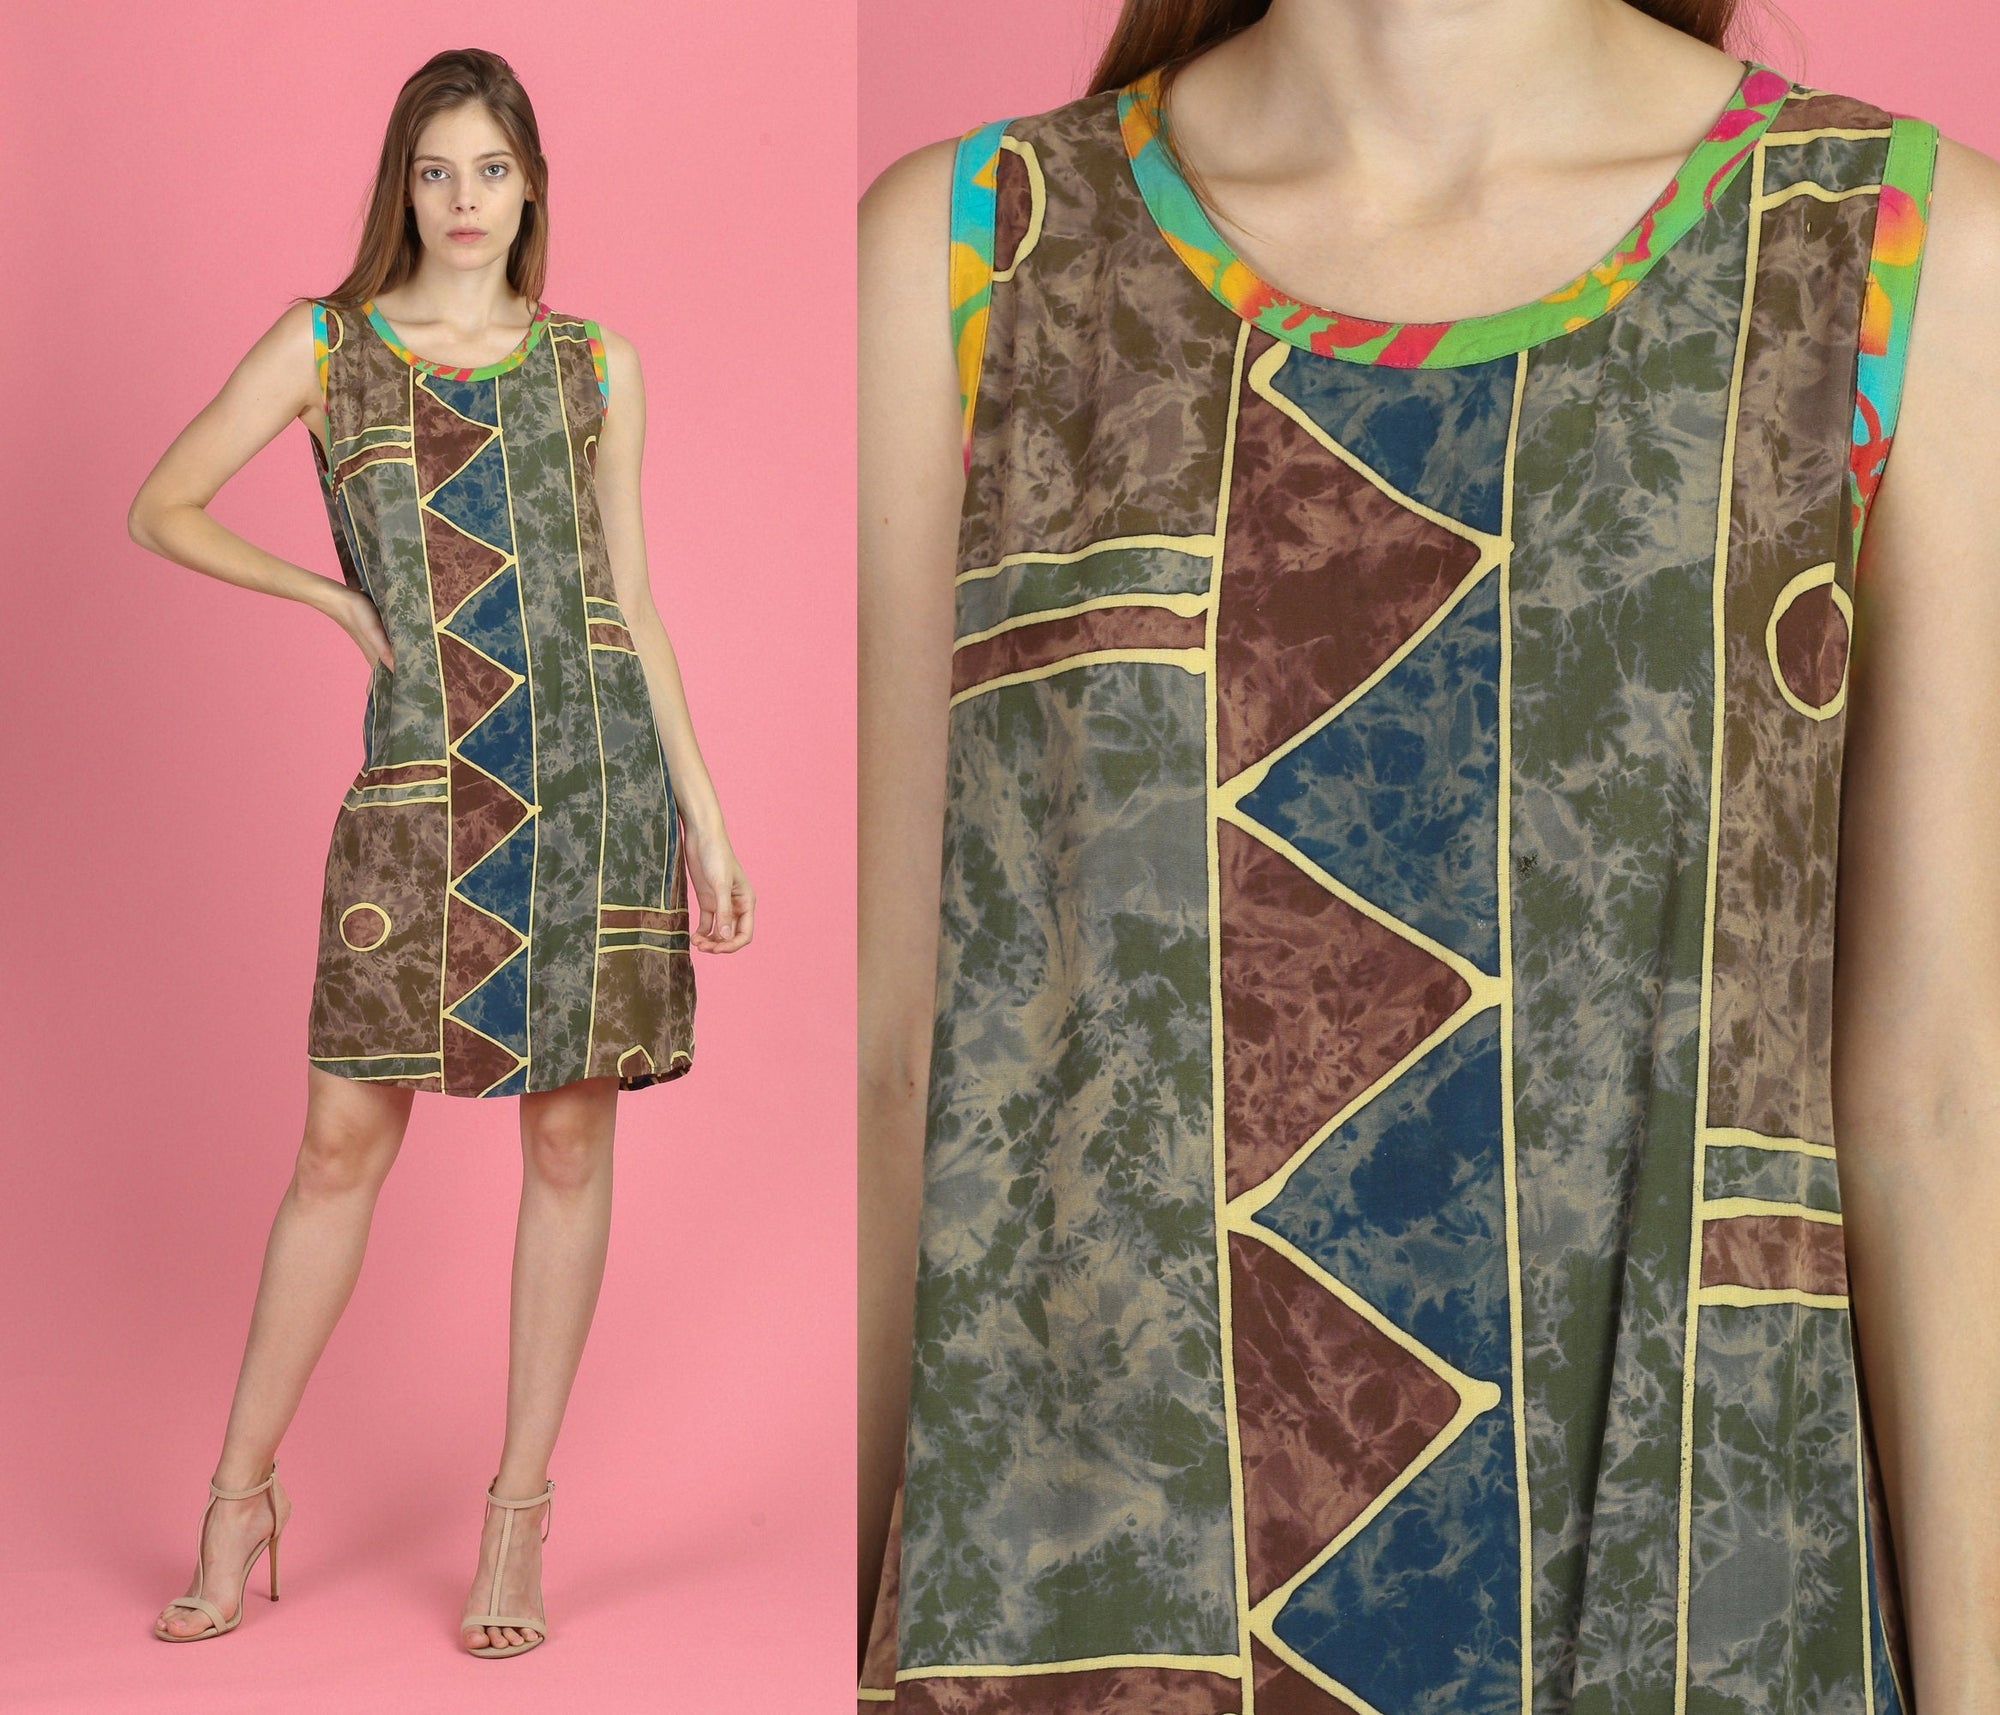 90s Boho Ethnic Mini Dress - Large